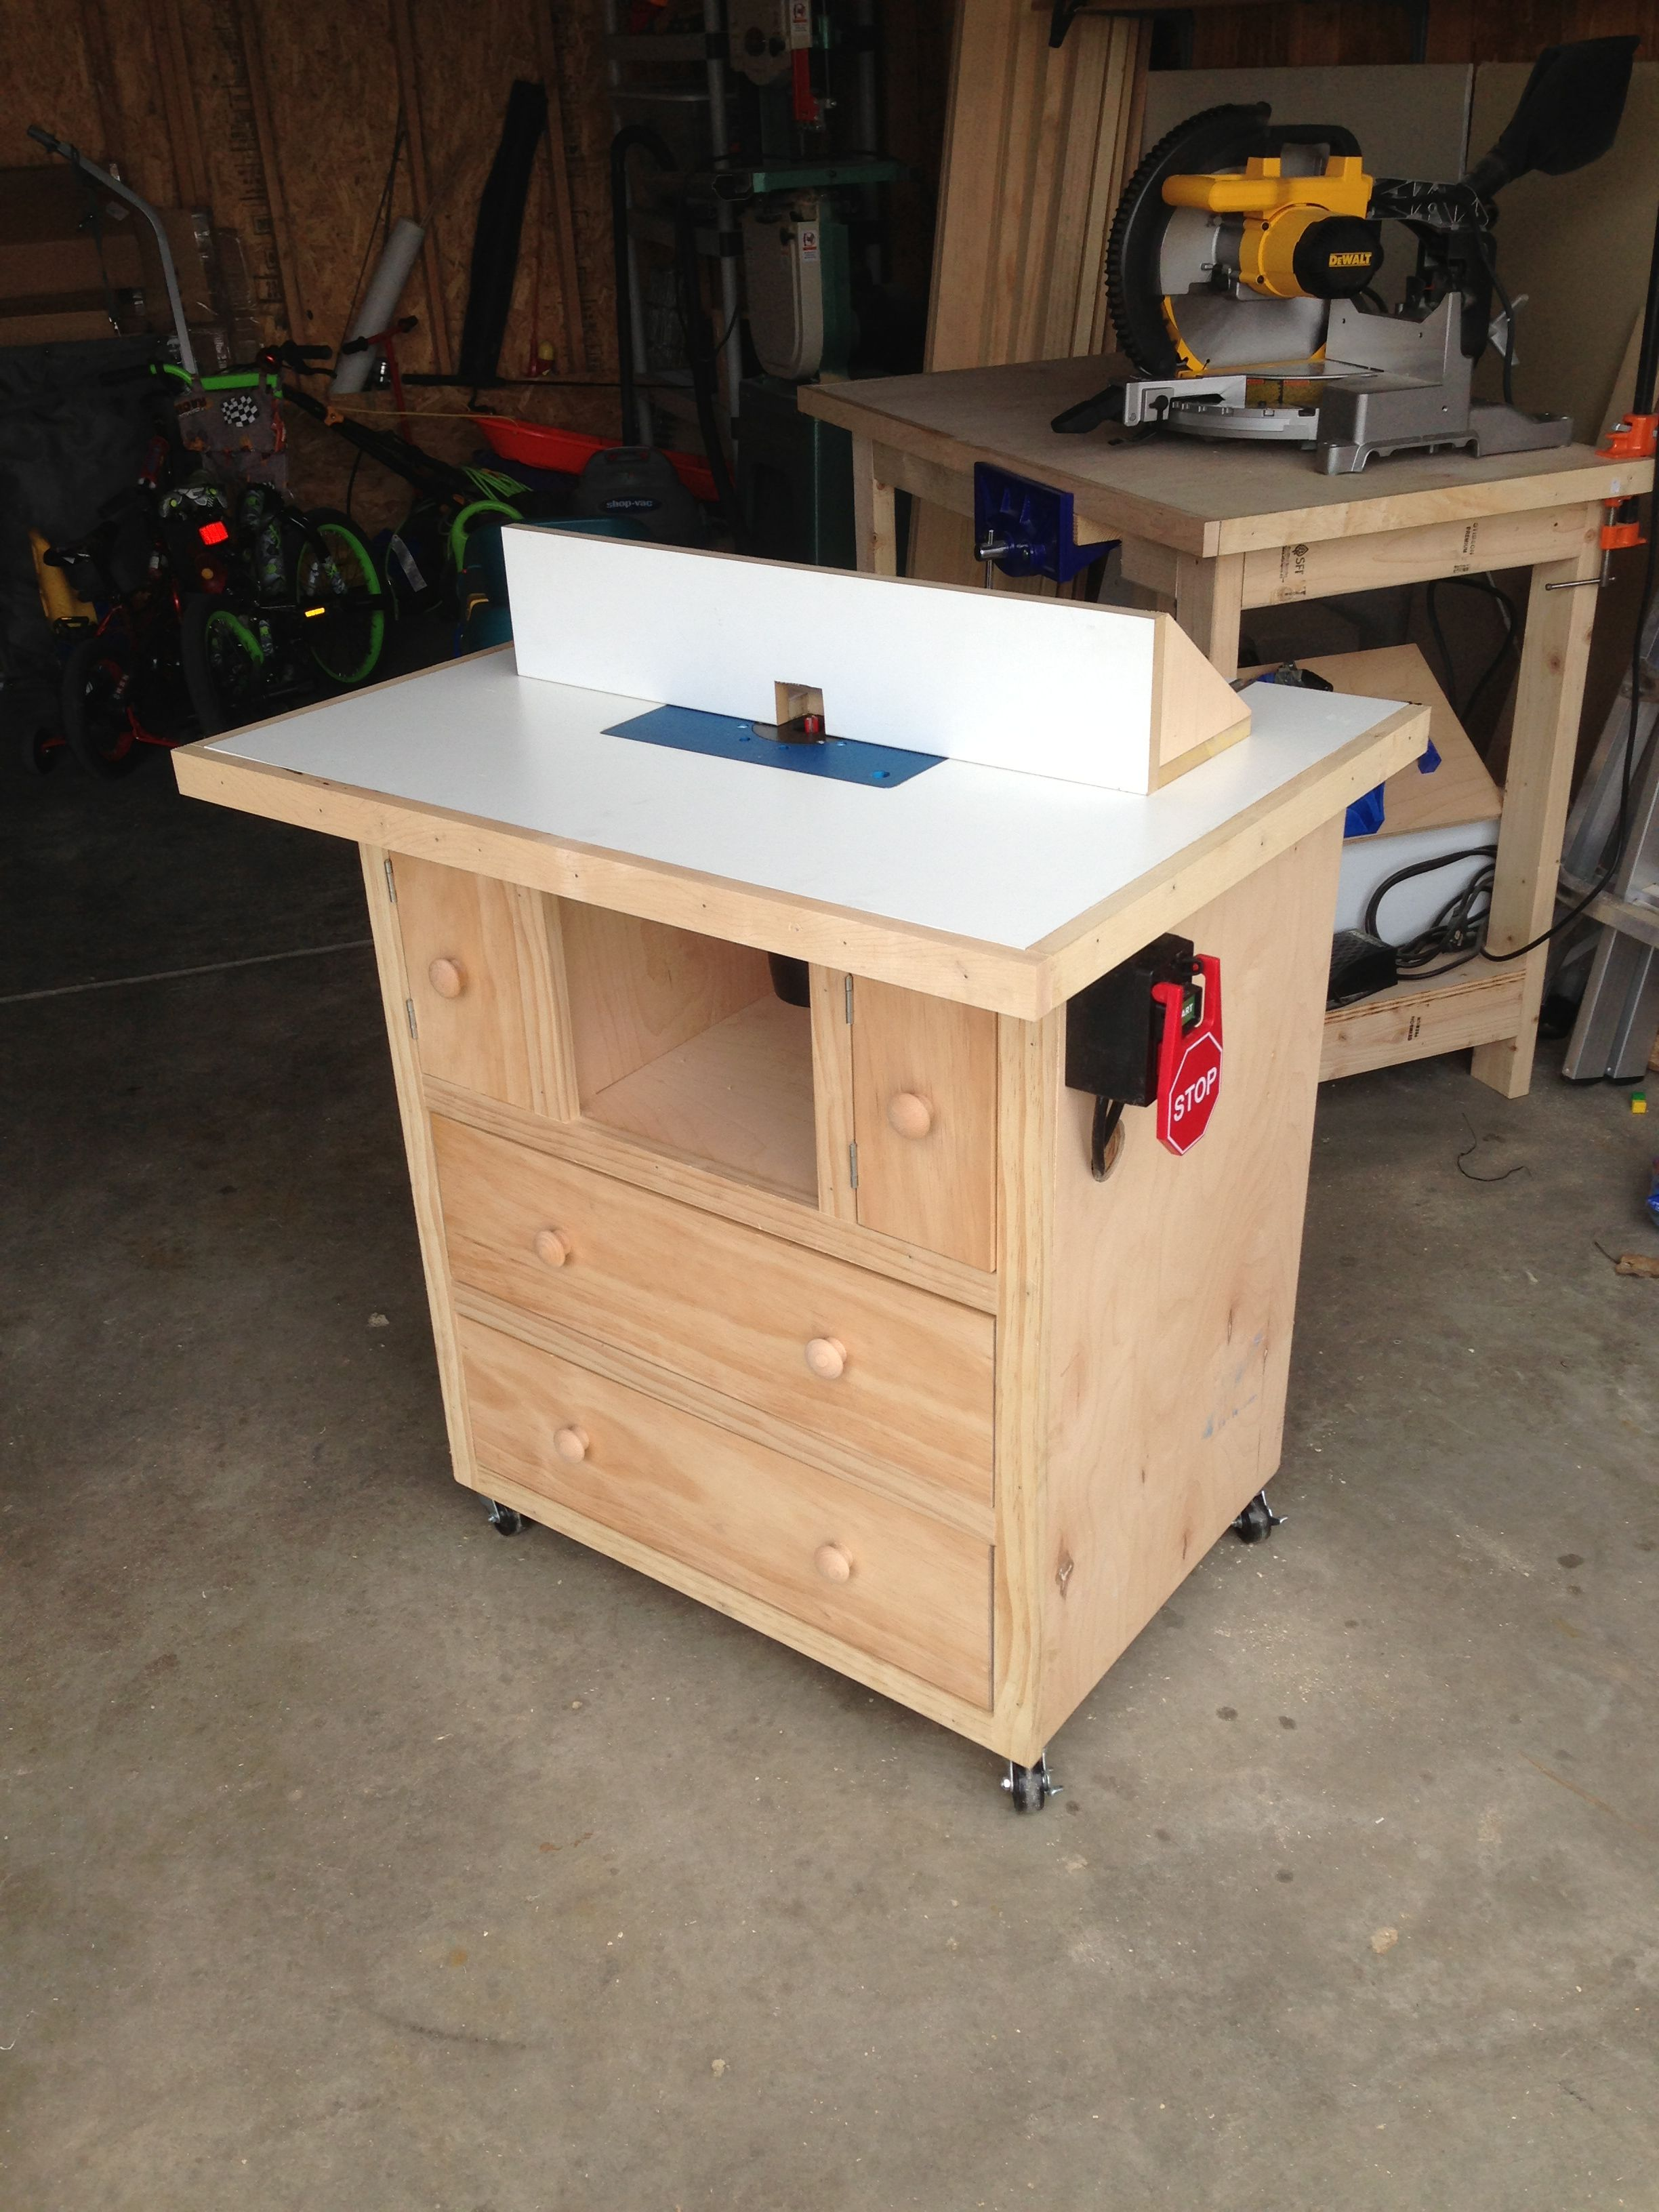 Diy Benchtop Router Table Router Table Do It Yourself Home Projects From Ana White